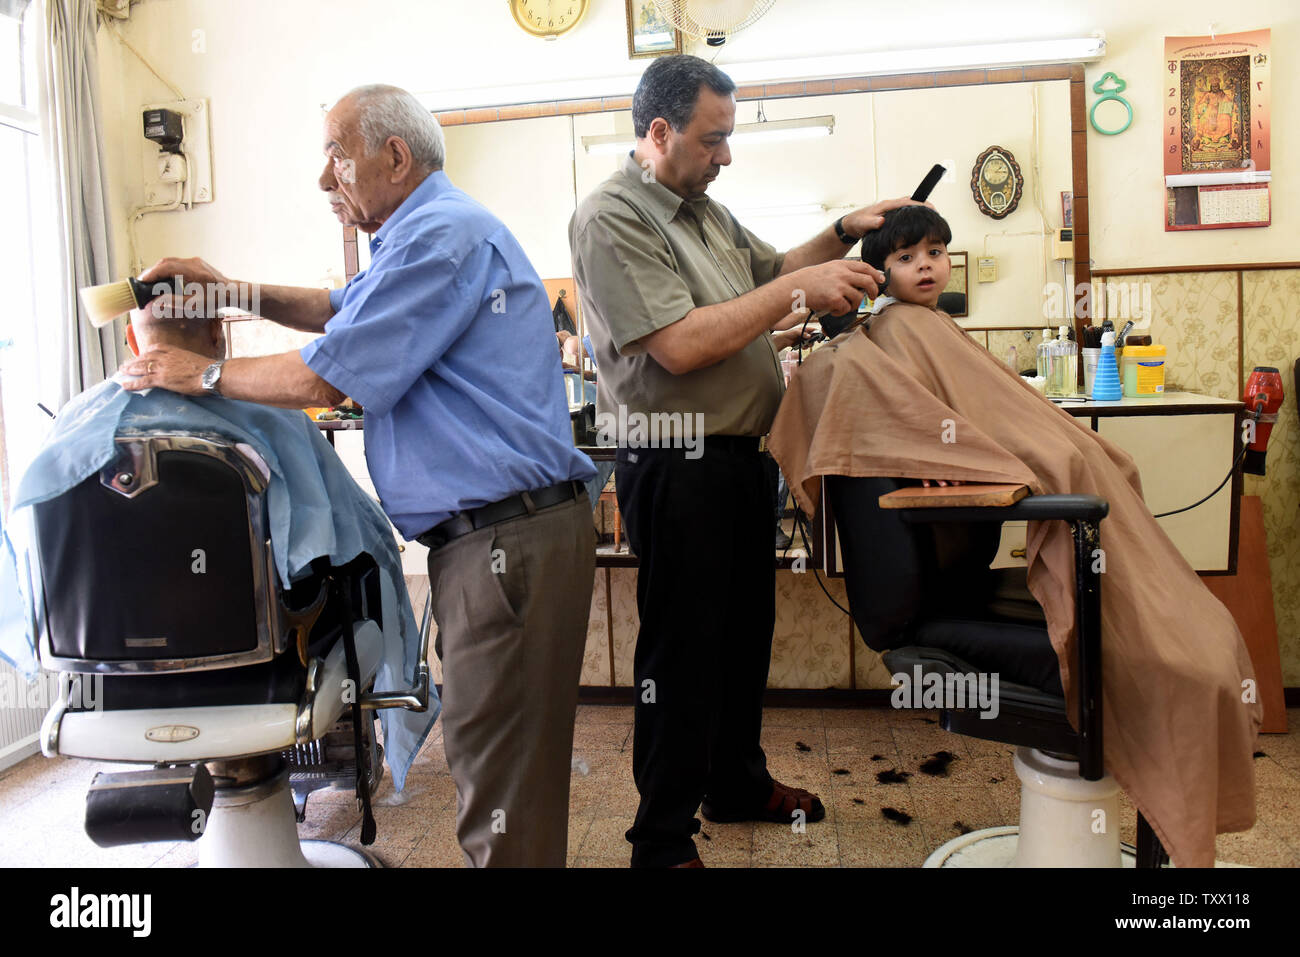 Palestinians get a hair cut before the Islamic holiday of Eid al-Fitr, in the market in Bethlehem, West Bank, June 13, 2018. Muslims around the world will celebrate the three day holiday of  Eid al-Fitr ,which marks the end of the Muslim holy month of fasting Ramadan.  Photo by Debbie Hill/UPI - Stock Image